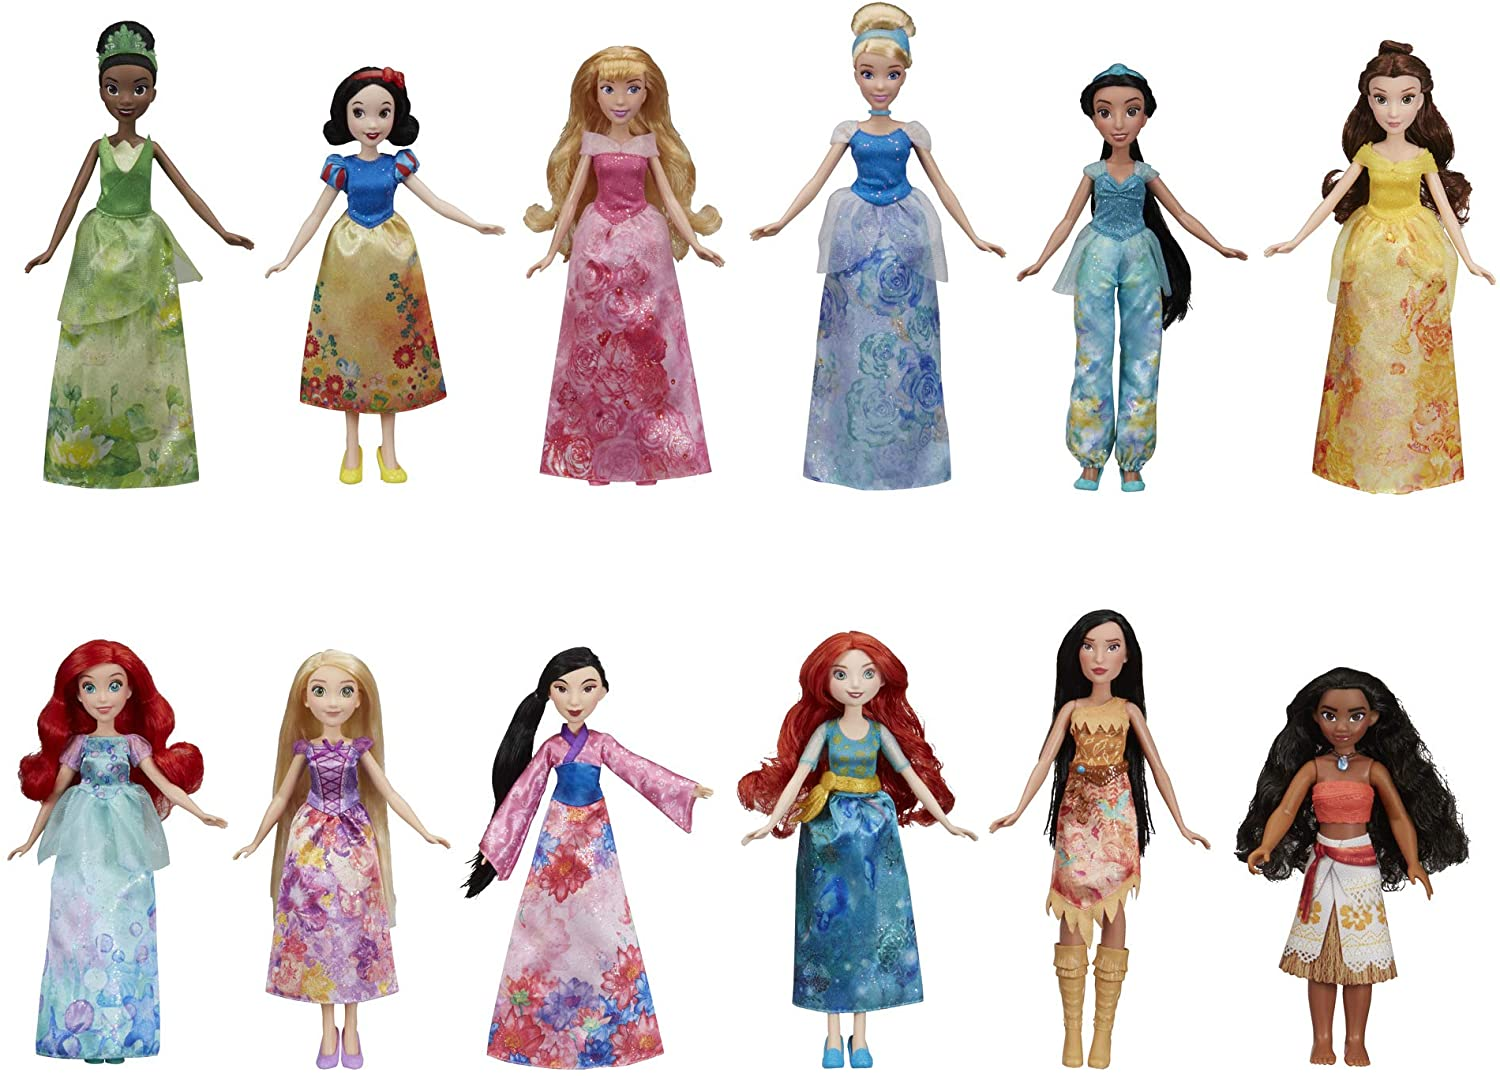 Amazon Com Disney Princess Royal Collection 12 Fashion Dolls